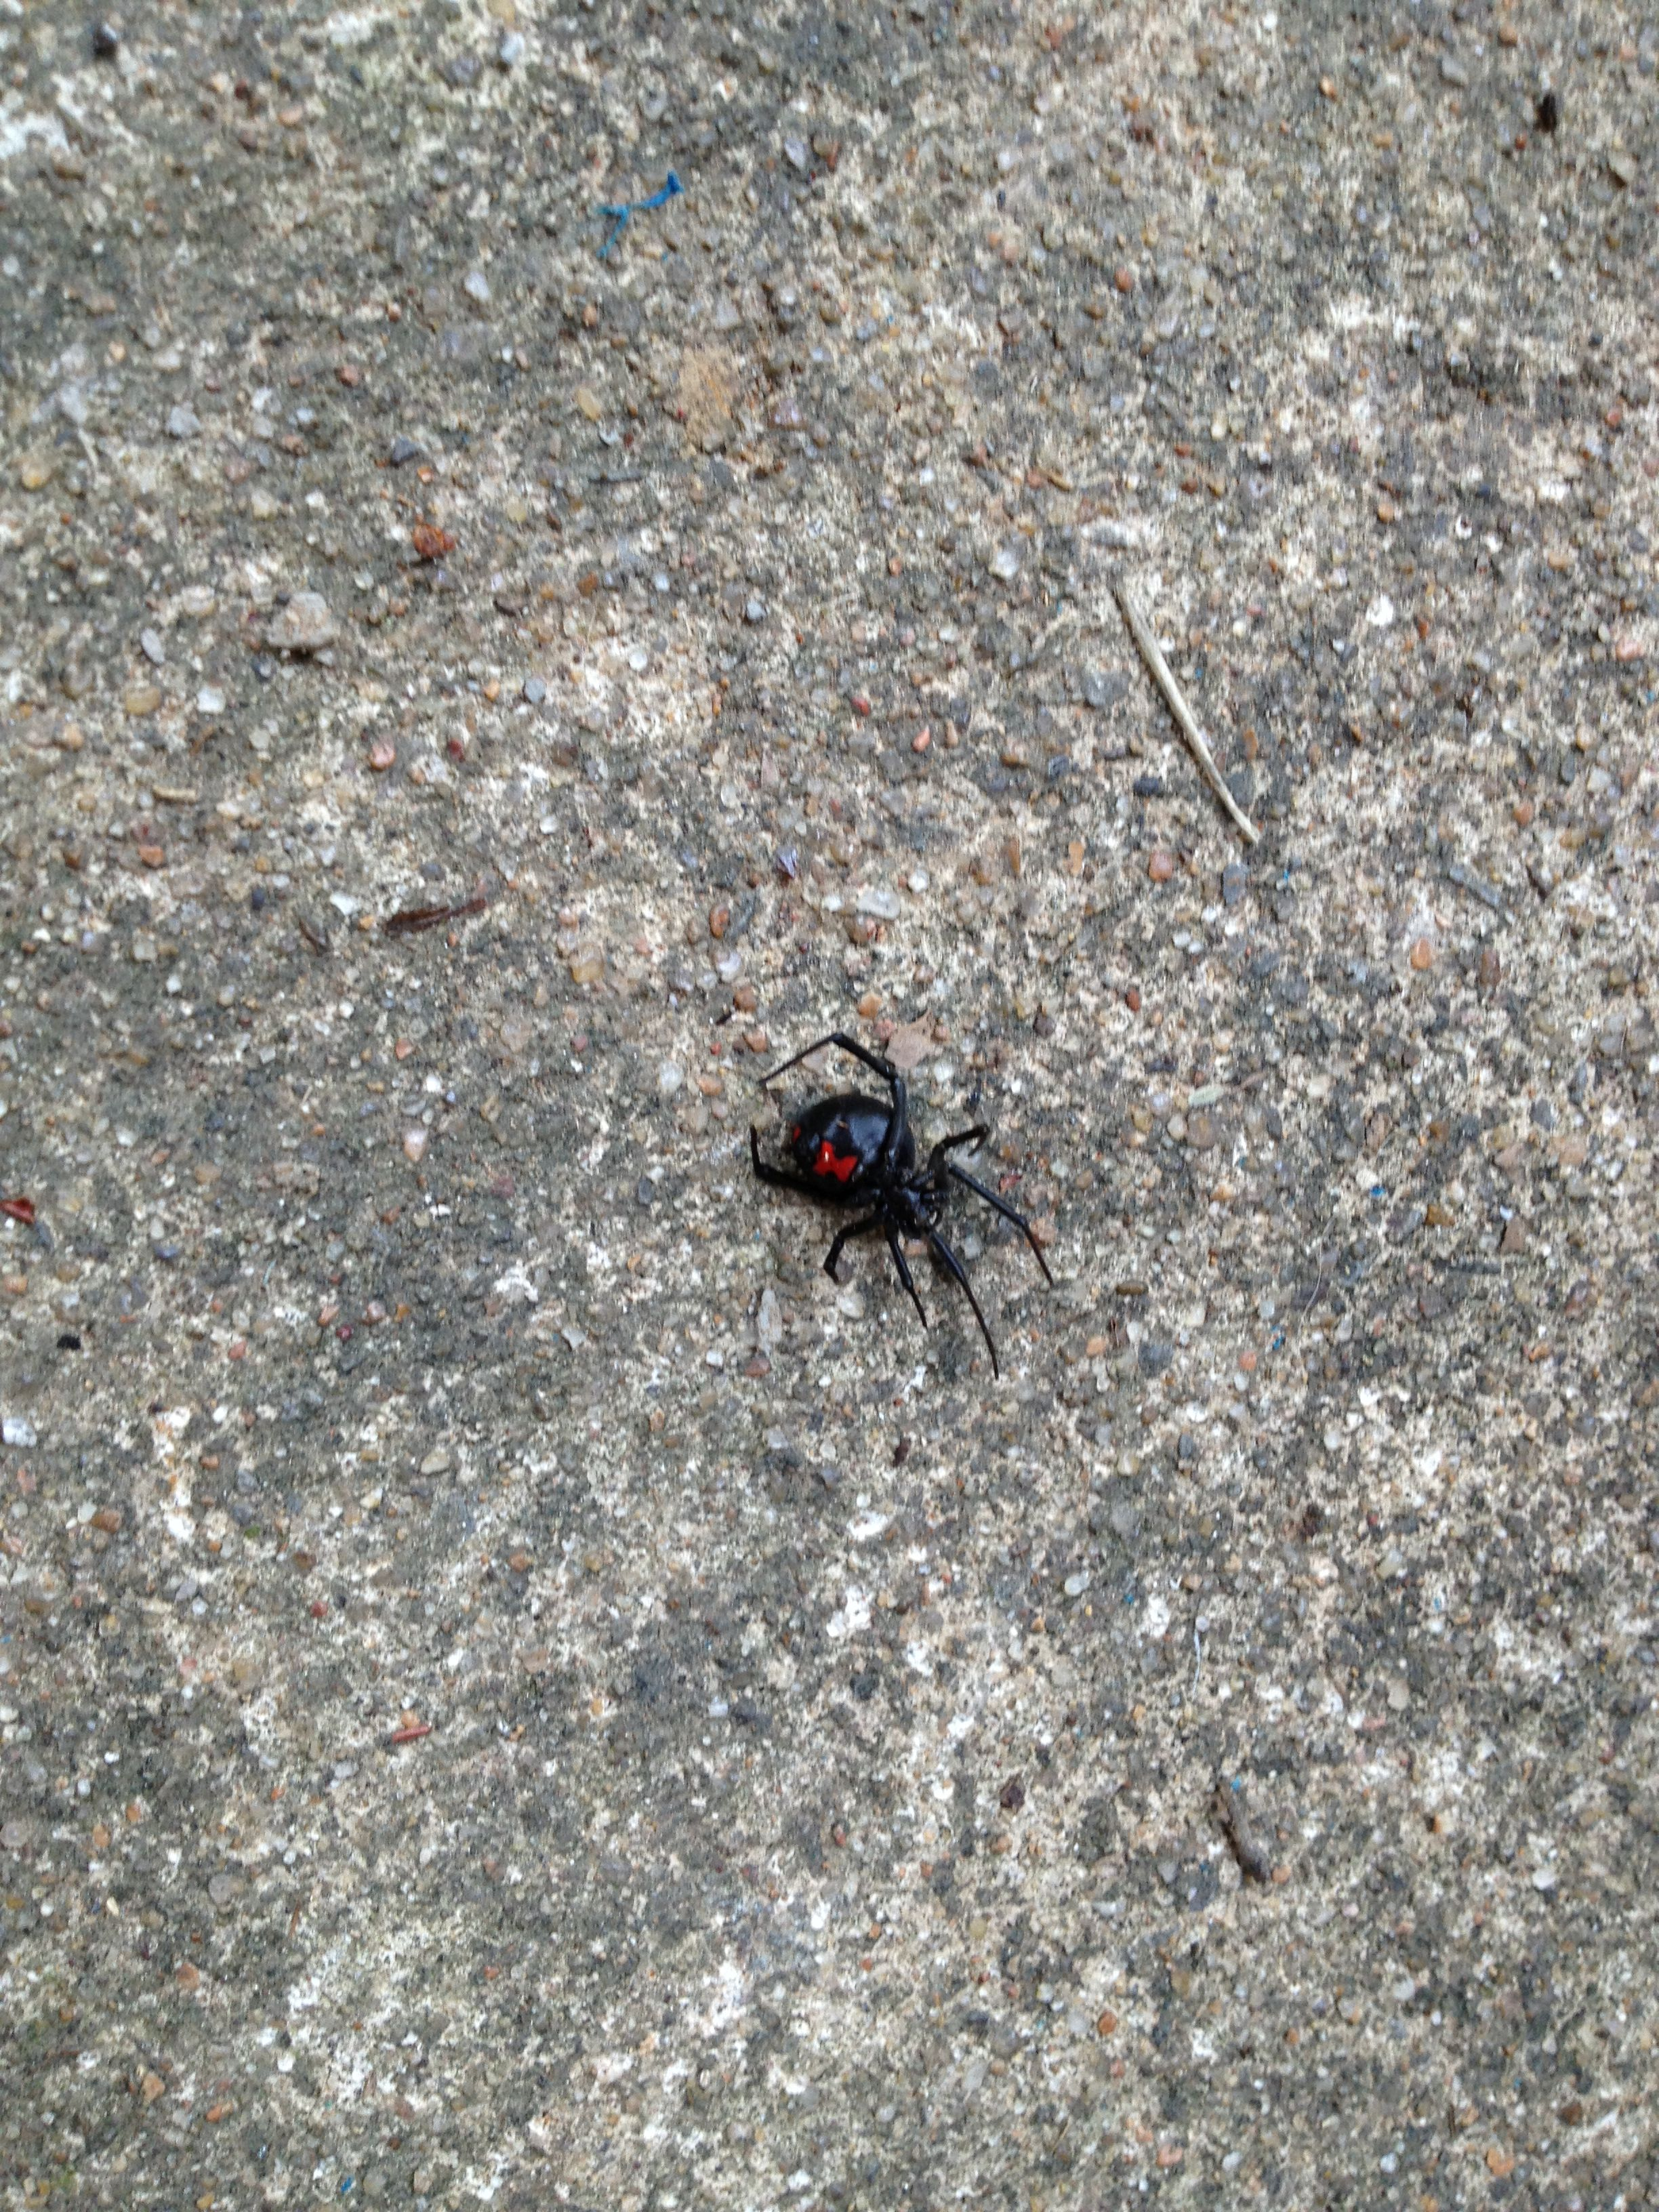 Dead Black Widow spider | Insects, bugs, spiders,...... | Pinterest